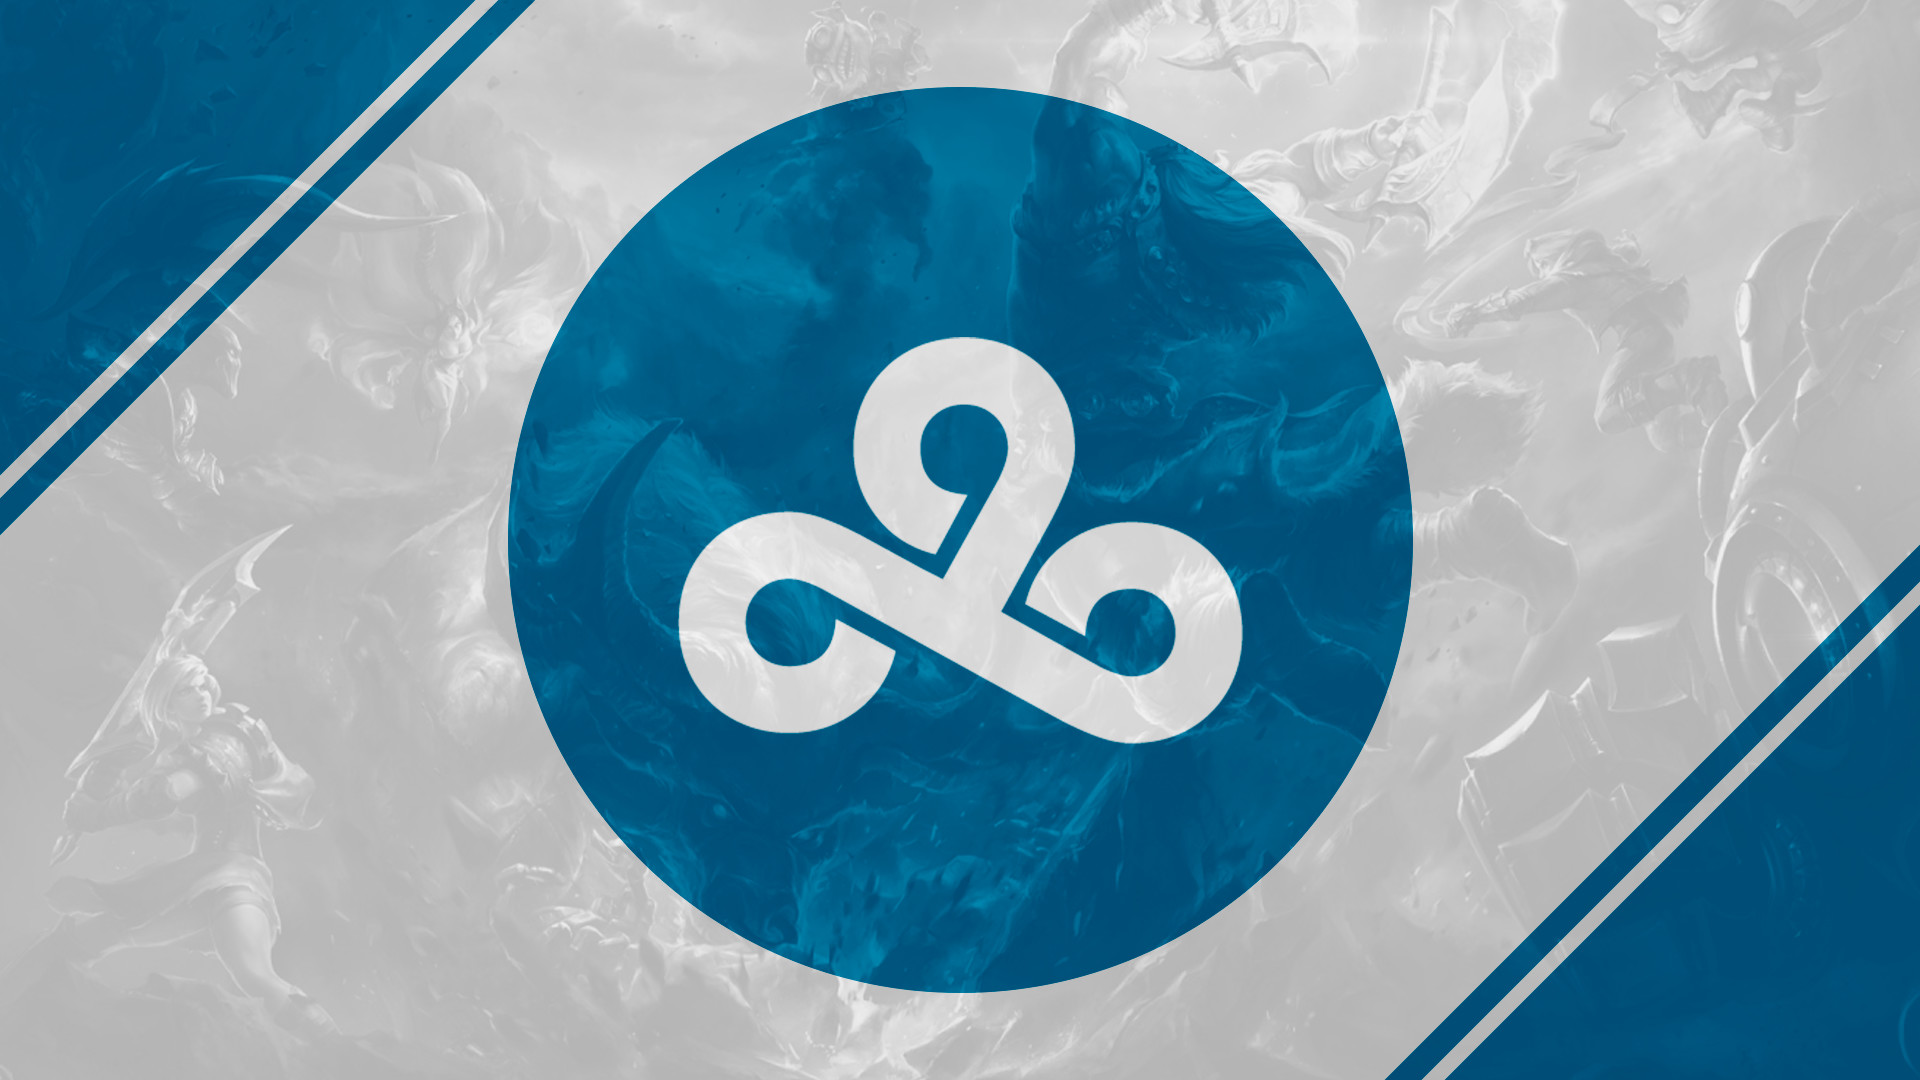 Cloud 9 Csgo HD Wallpapers (94+ Images